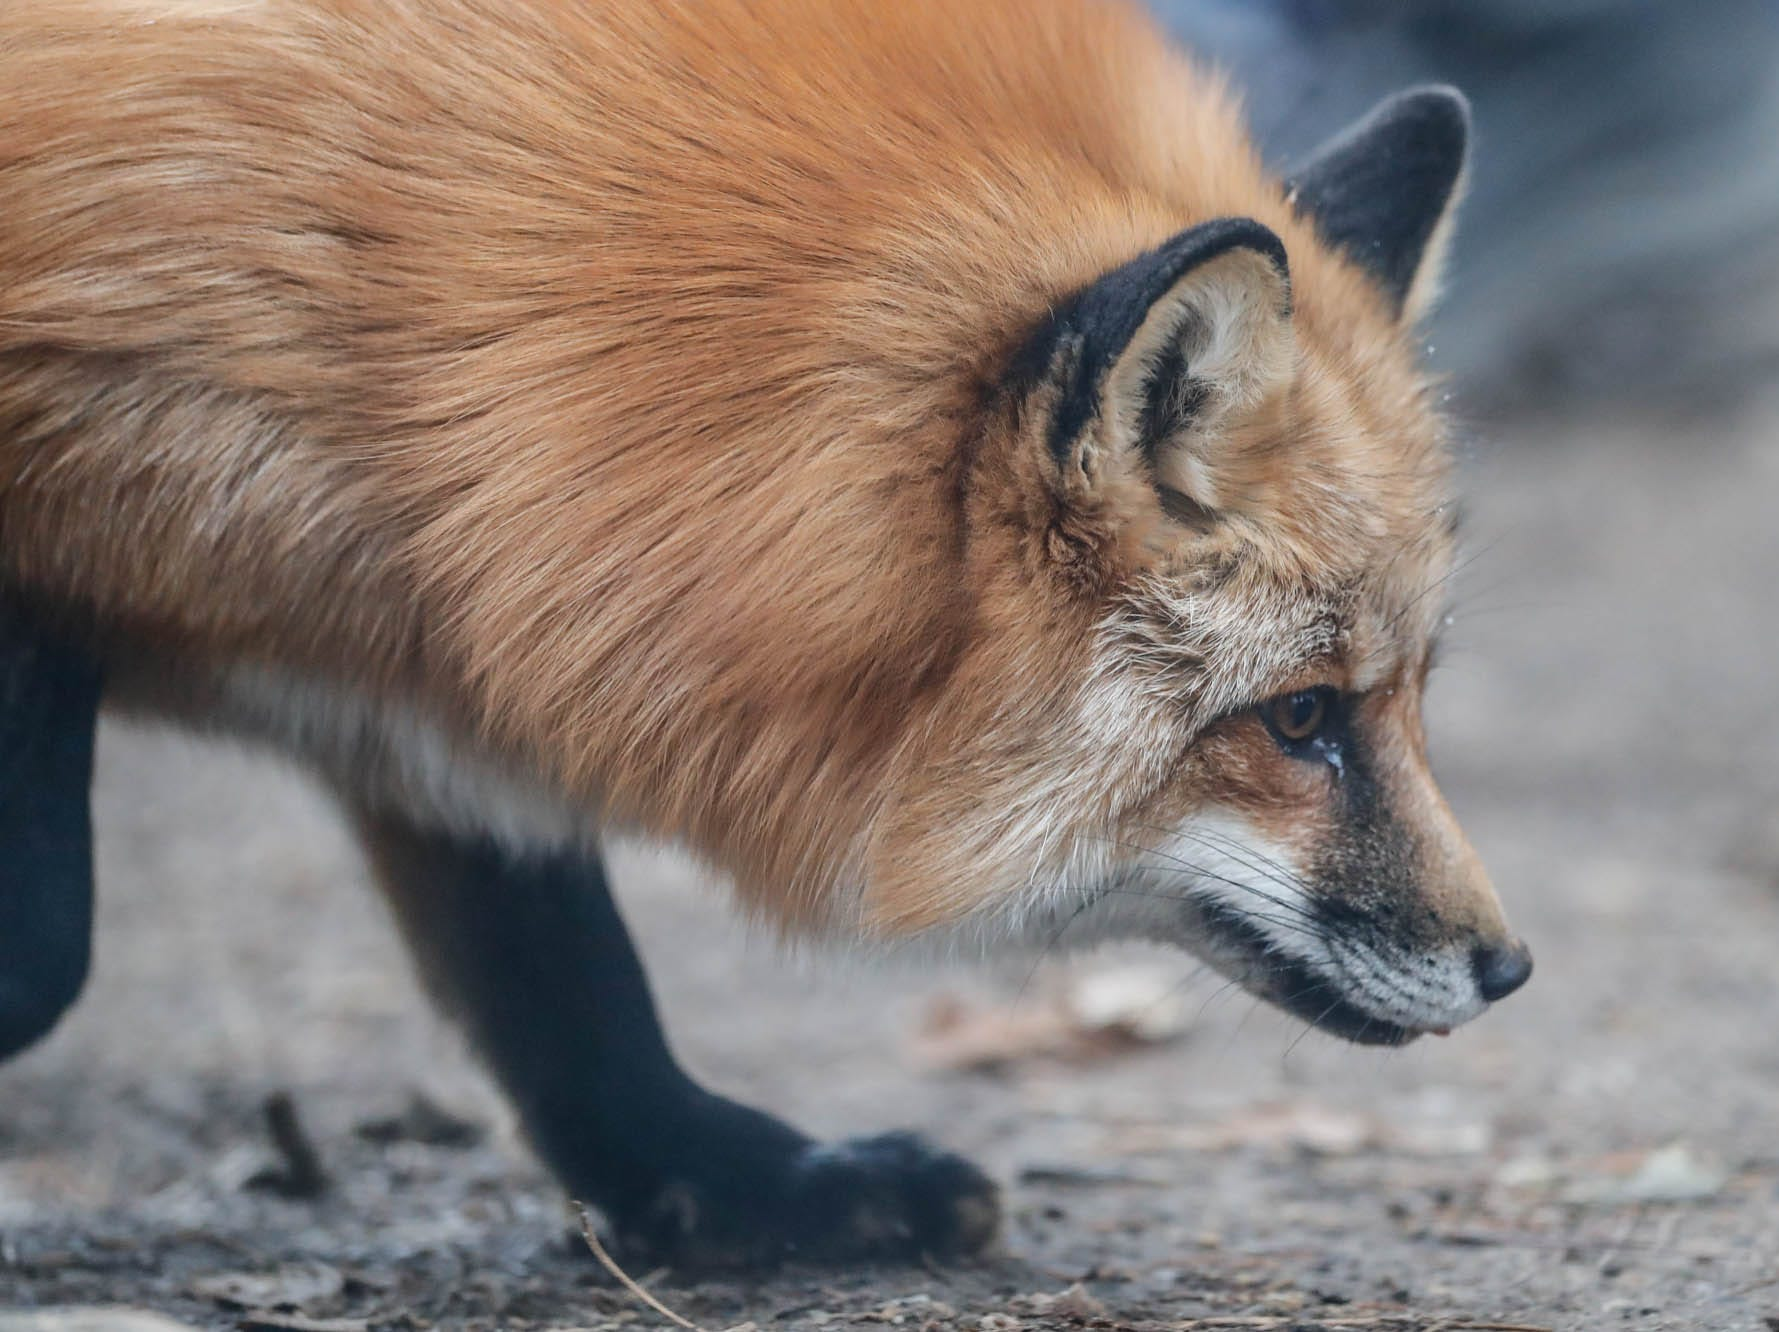 Scarlette, a red fox, hunts for tasty Christmas treats which decorated the fox enclosure at Wolf Park during Santa's annual visit in Battle Ground Indiana on Saturday, Dec. 15, 2018.